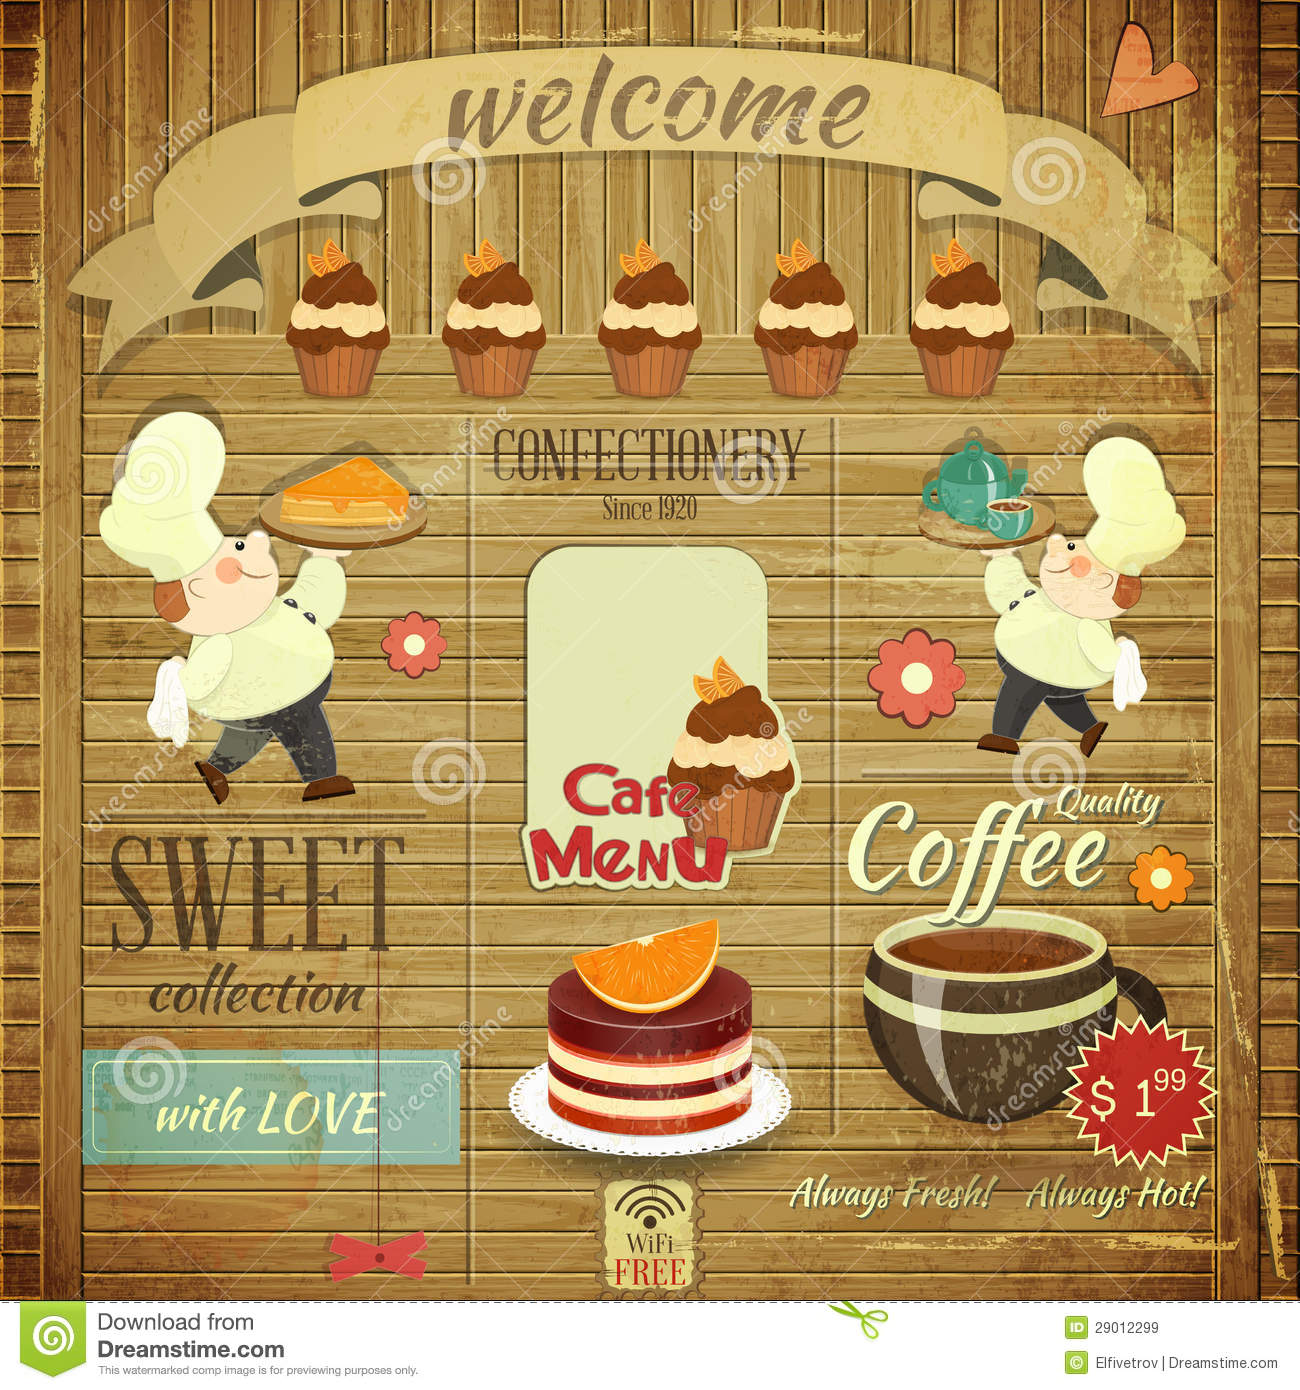 Cafe Confectionery Menu Retro Design Stock Vector